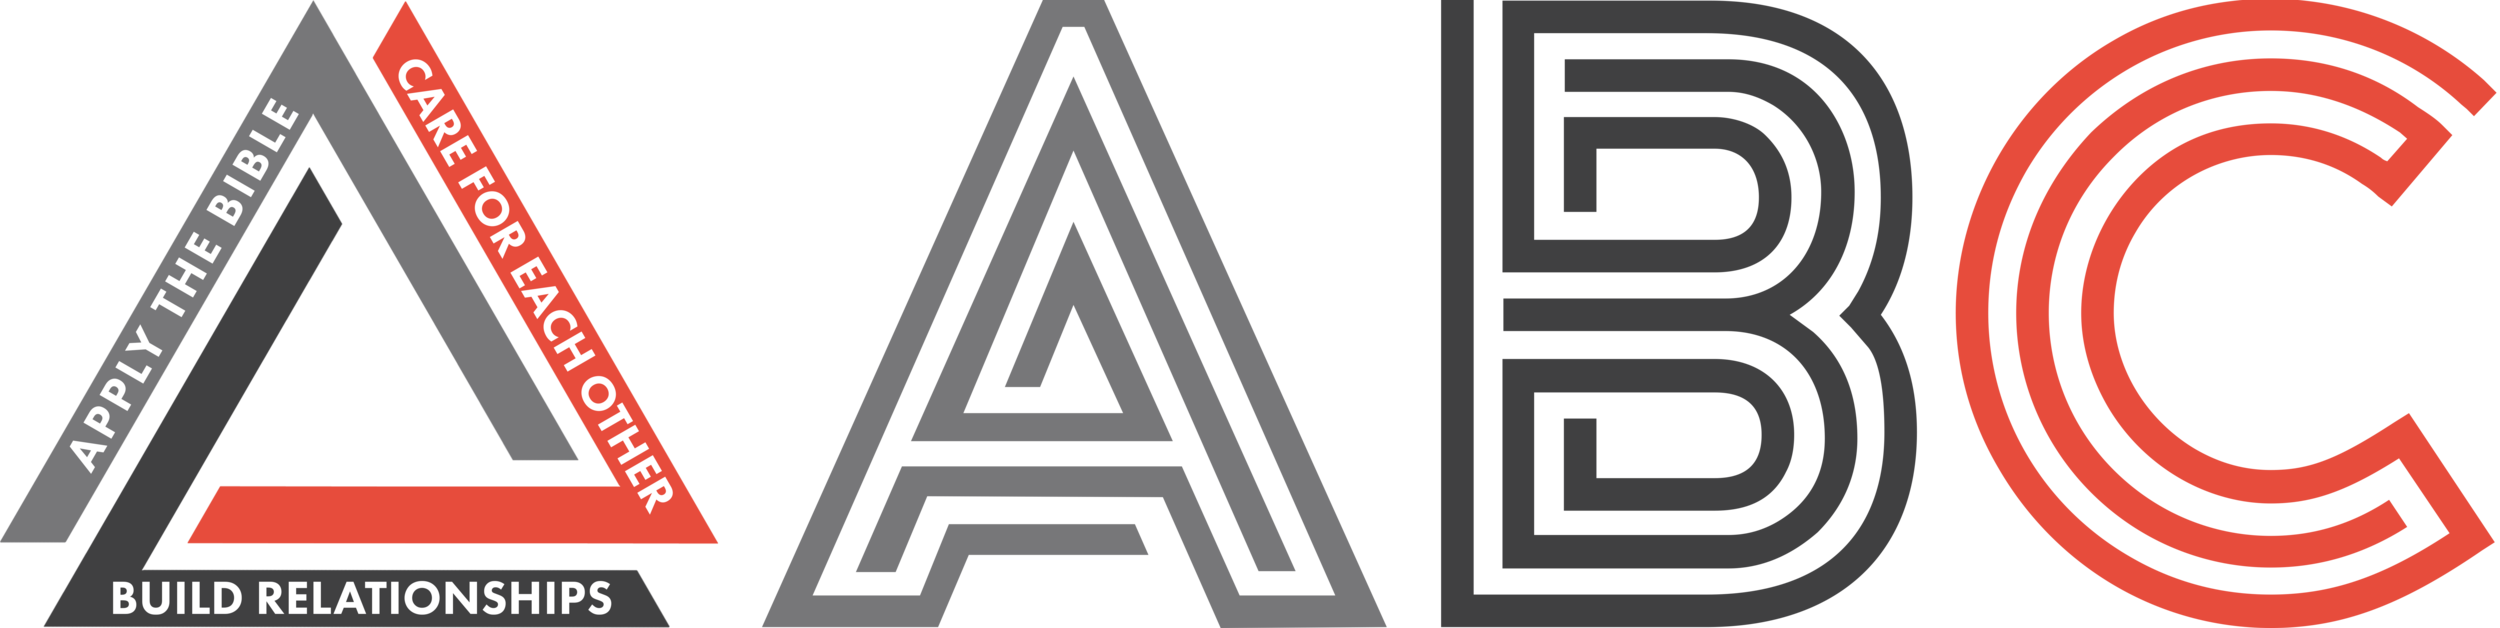 Community Group ABCs Logo and Letters Rectangle.png